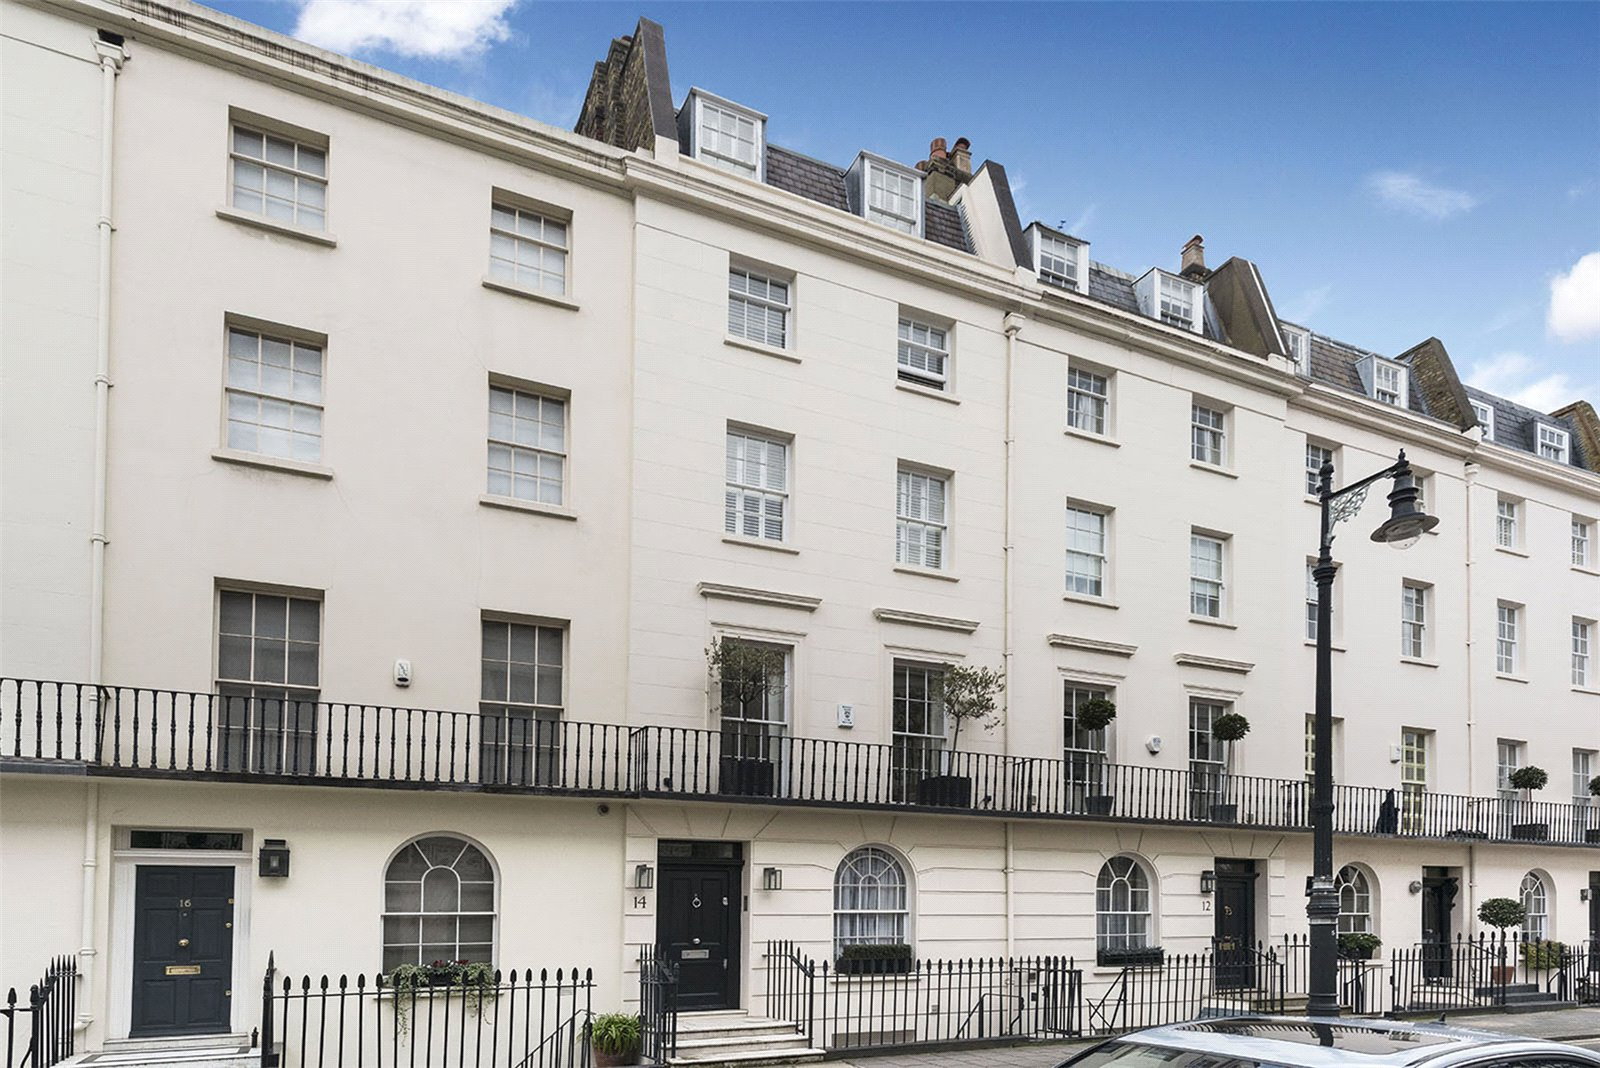 House for Rent at Chester Row, Belgravia, London, SW1W Chester Row, Belgravia, London, SW1W